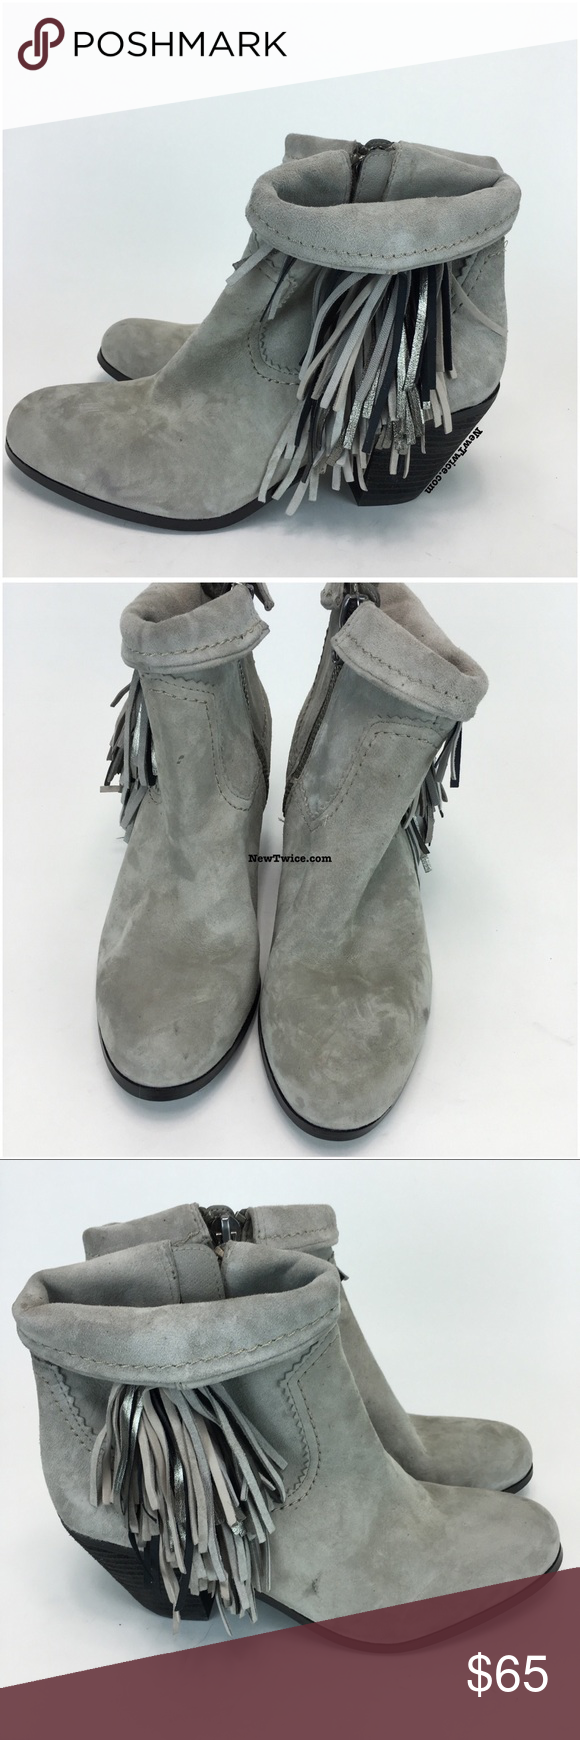 2dee420c377af6 Sam Edelman Louie Grey Fringe bootie 10 New without the original box. Soft  suede. Side zip. Top can be rolled down or left up. A few small spots from  being ...